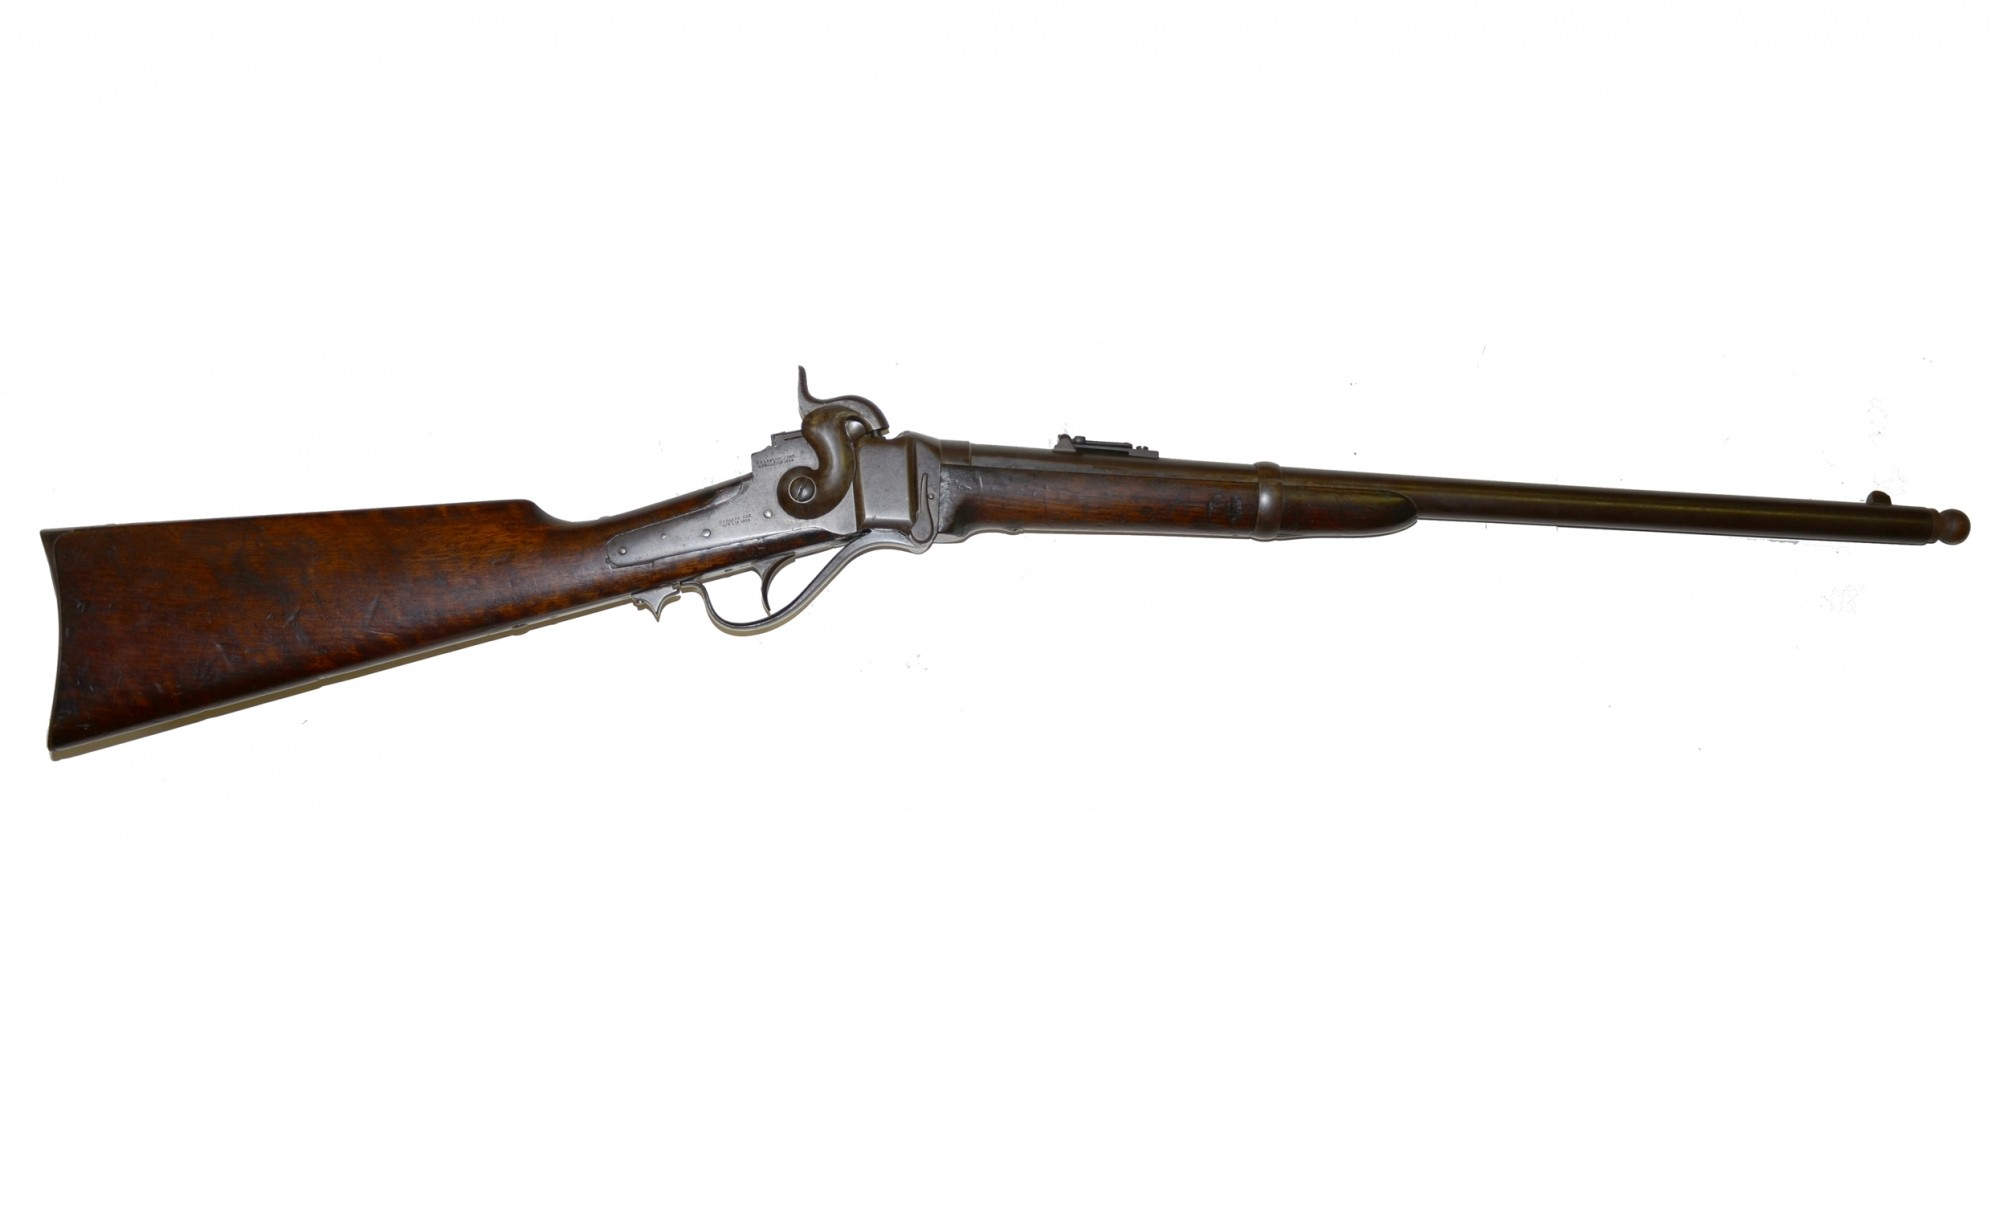 CIVIL WAR NEW MODEL SHARPS CARBINE